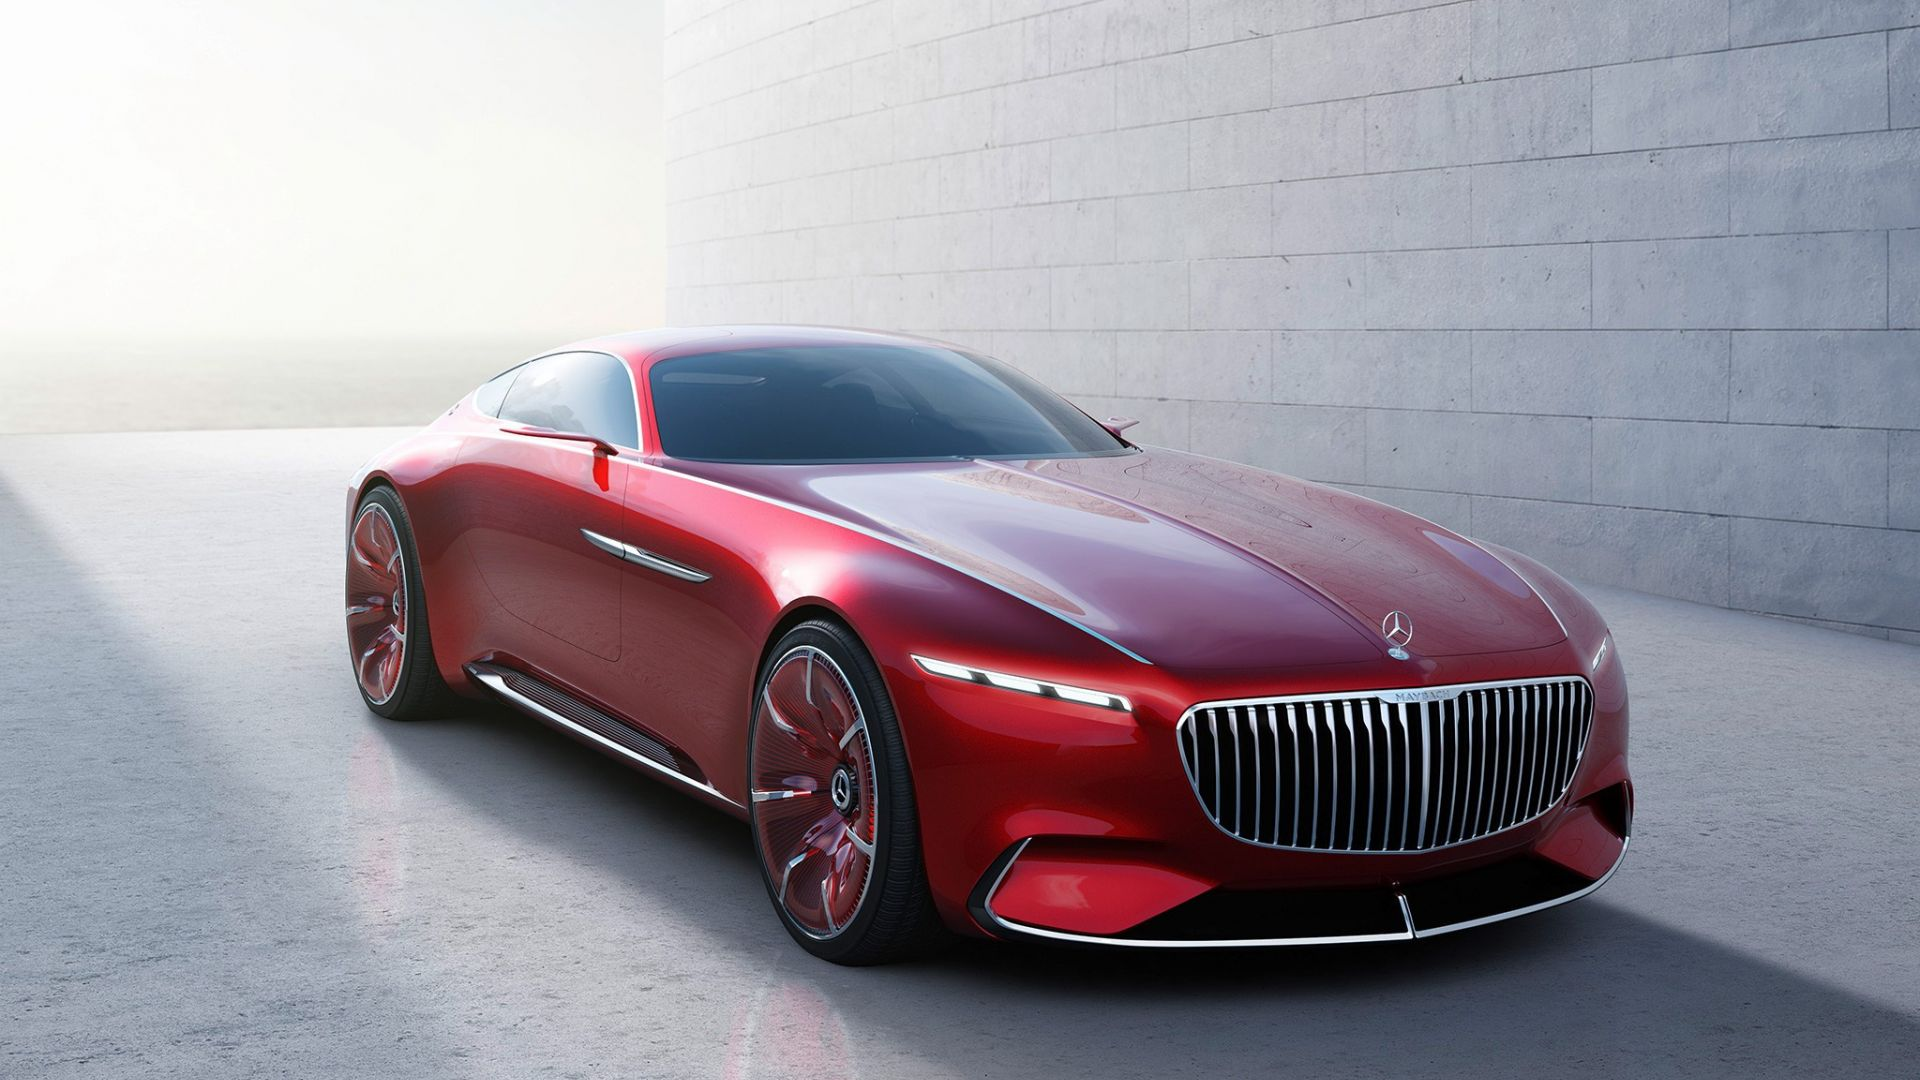 Wallpaper Vision Mercedes-Maybach 6, red, luxury car